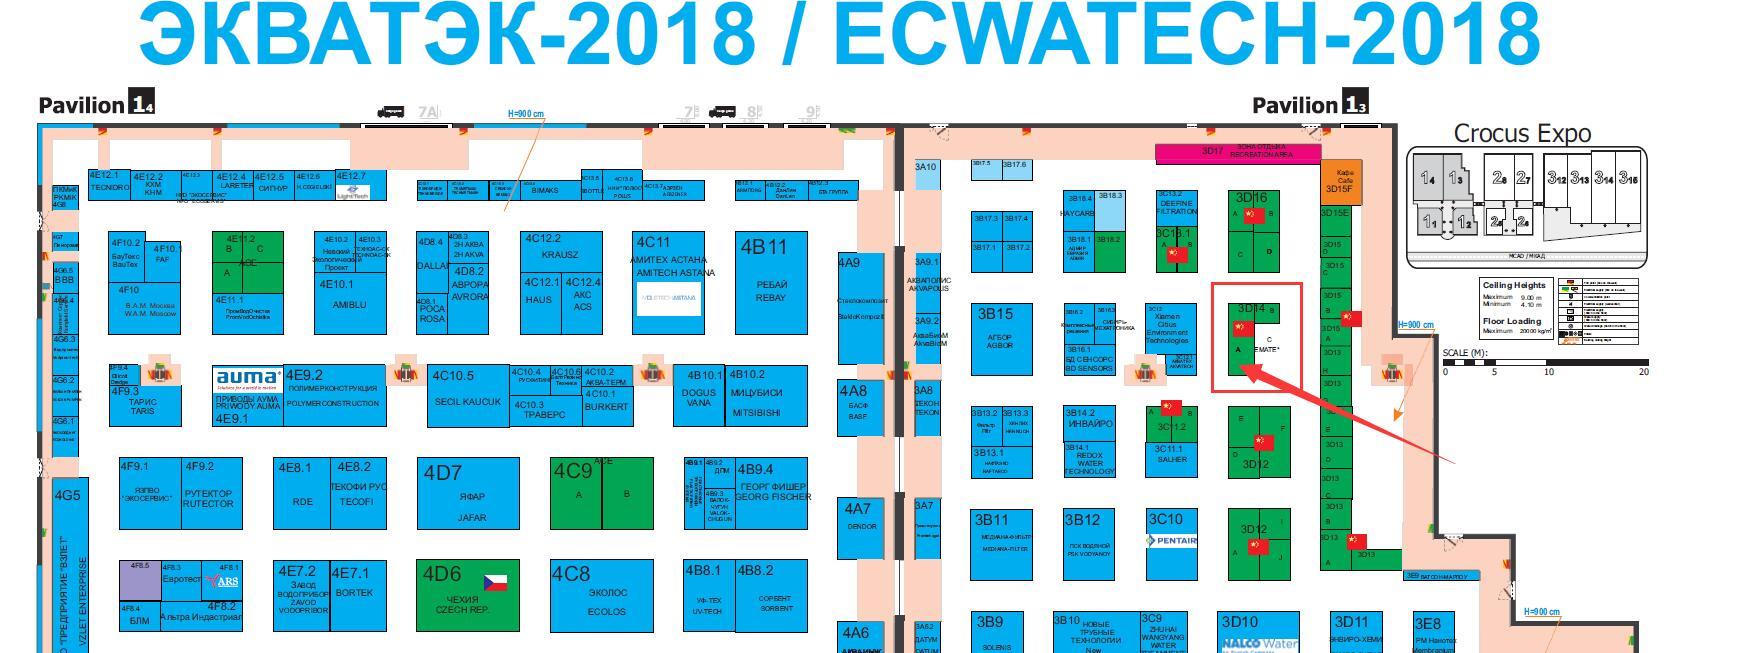 KeenSen will attend ECWATECH-2018